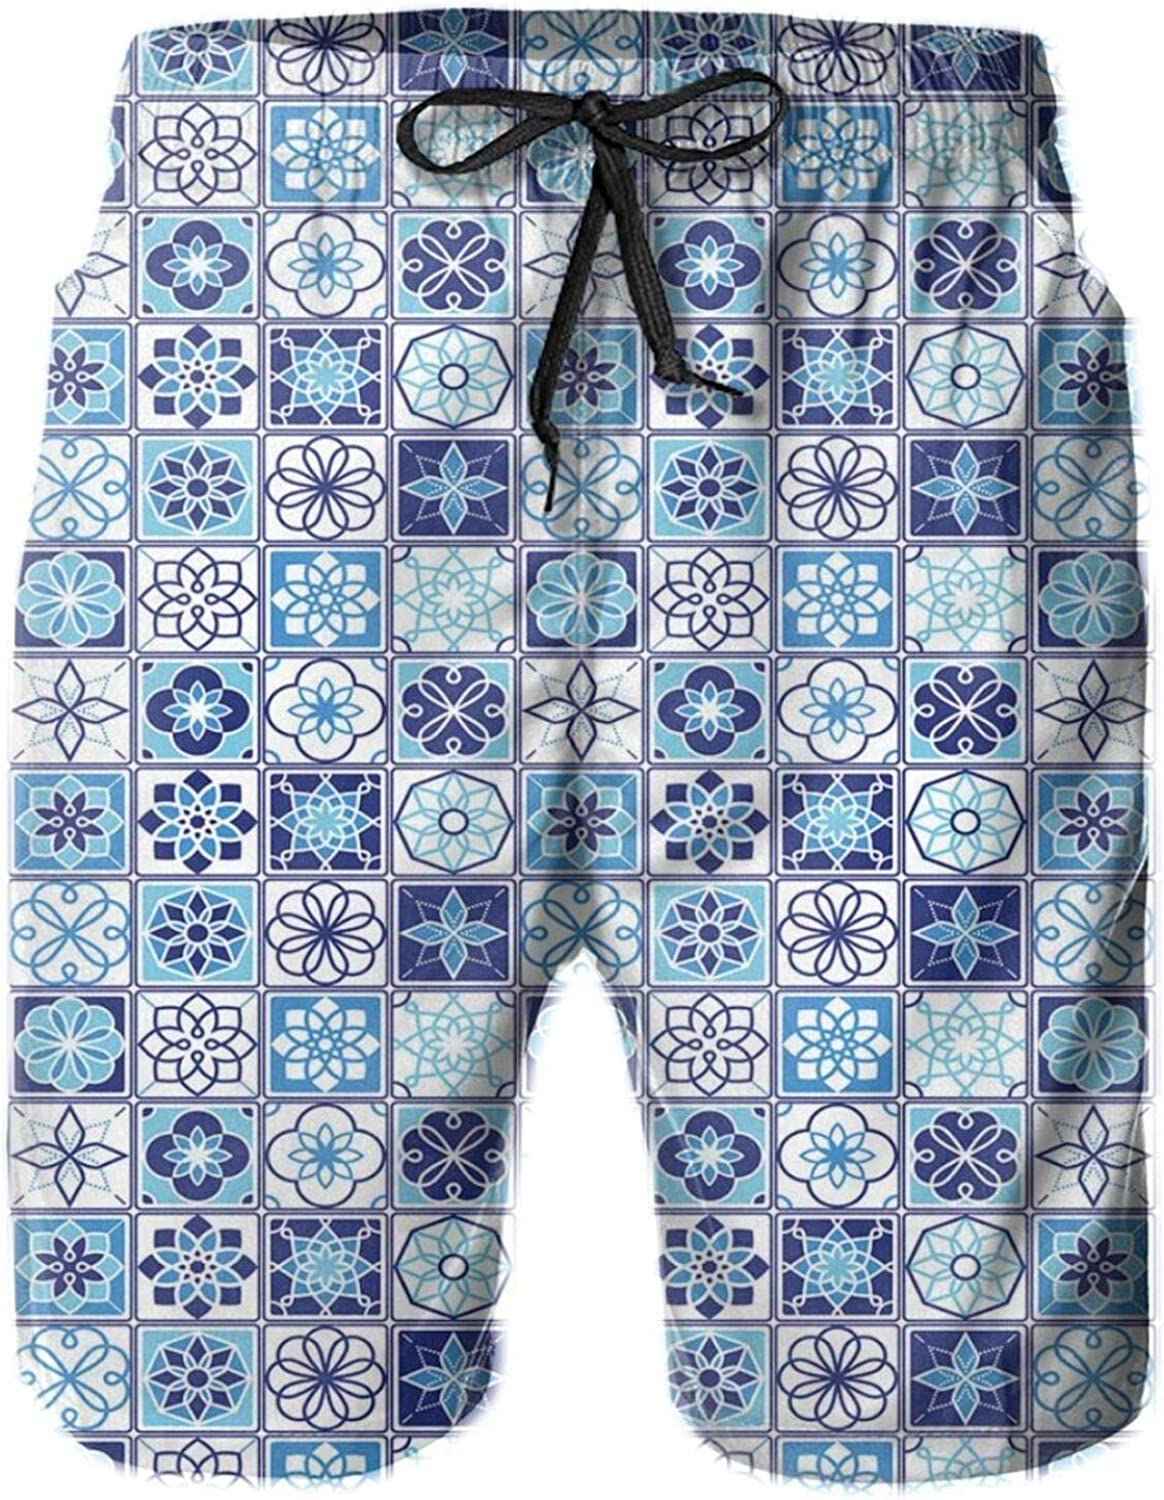 Folkloric Portuguese Pattern with Floral Motifs in Squares Drawstring Waist Beach Shorts for Men Swim Trucks Board Shorts with Mesh Lining,L